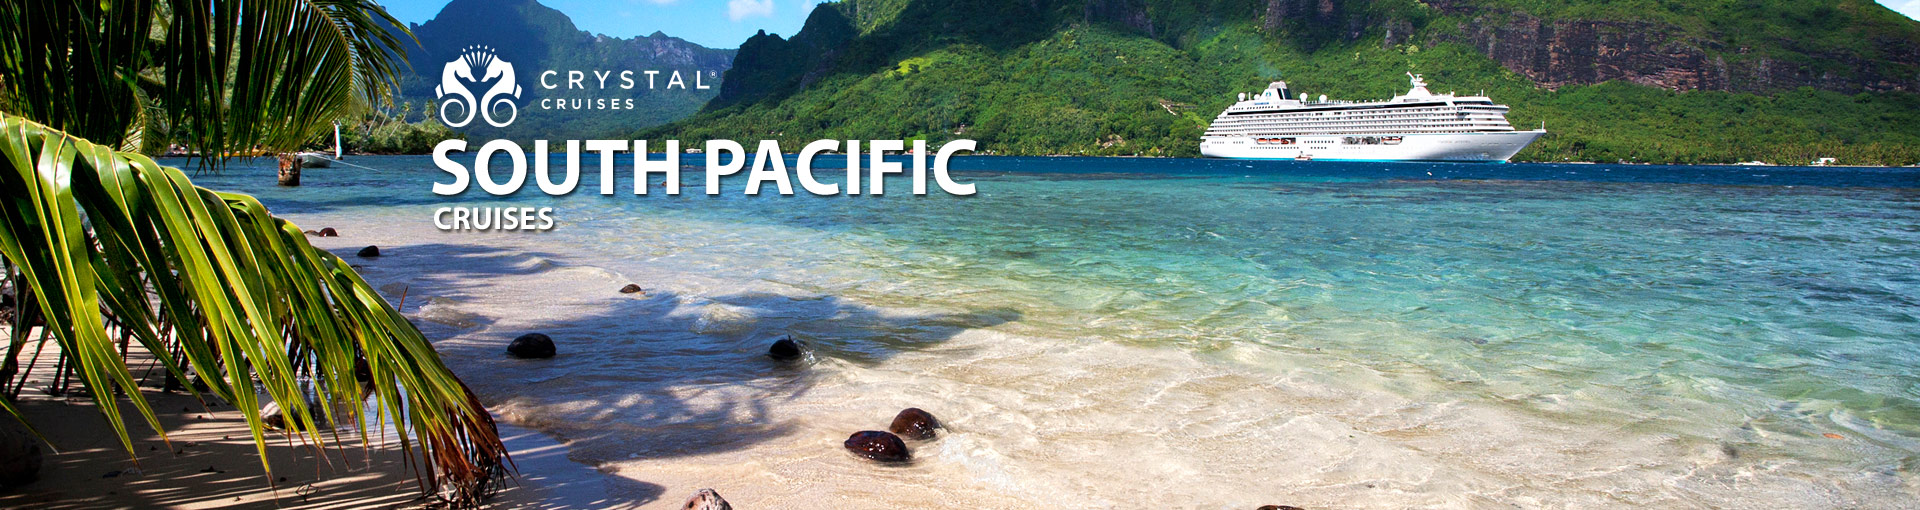 Crystal Cruises South Pacific Tahiti Cruises